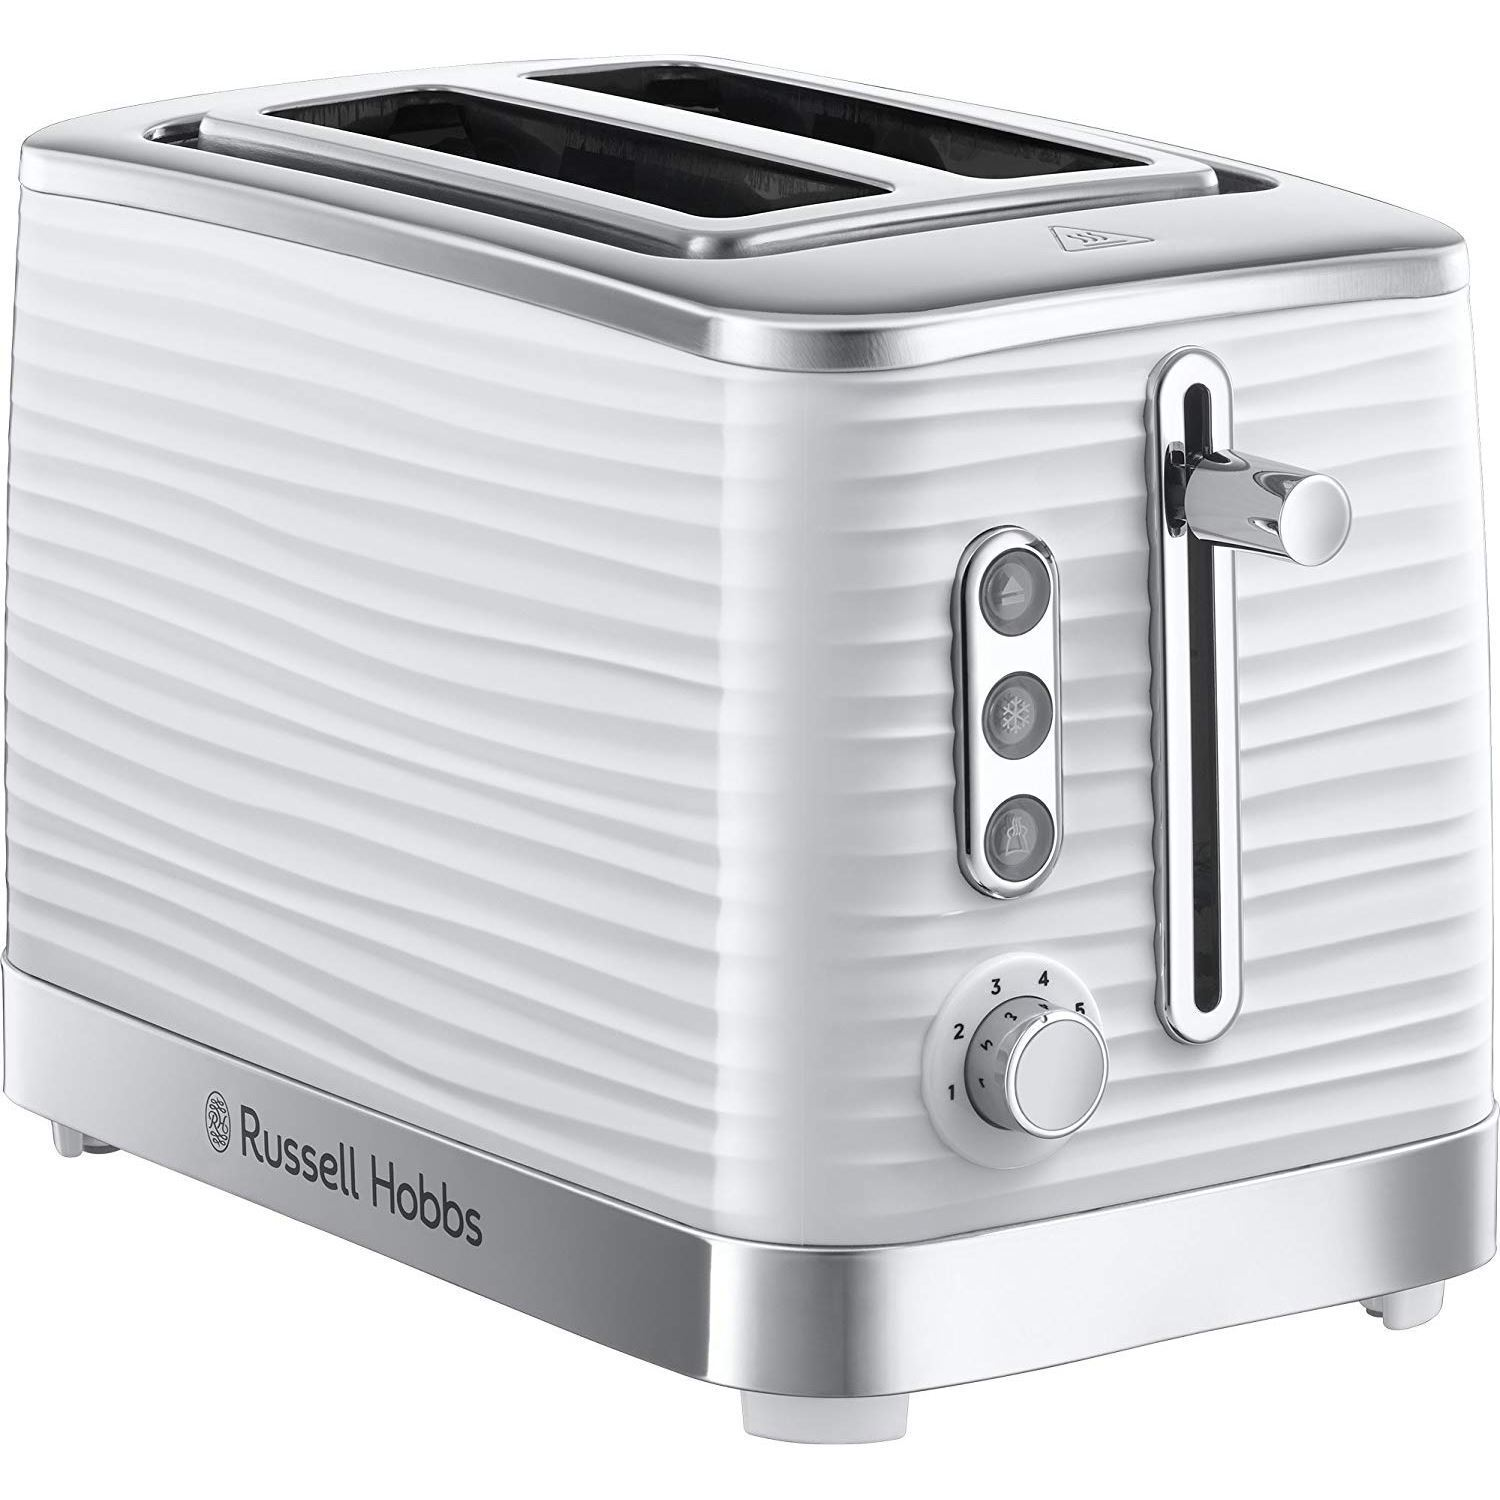 Russell Hobbs 24370 Inspire Haute Brillance PLASTIQUE 2 Tranches Grille-Pain,